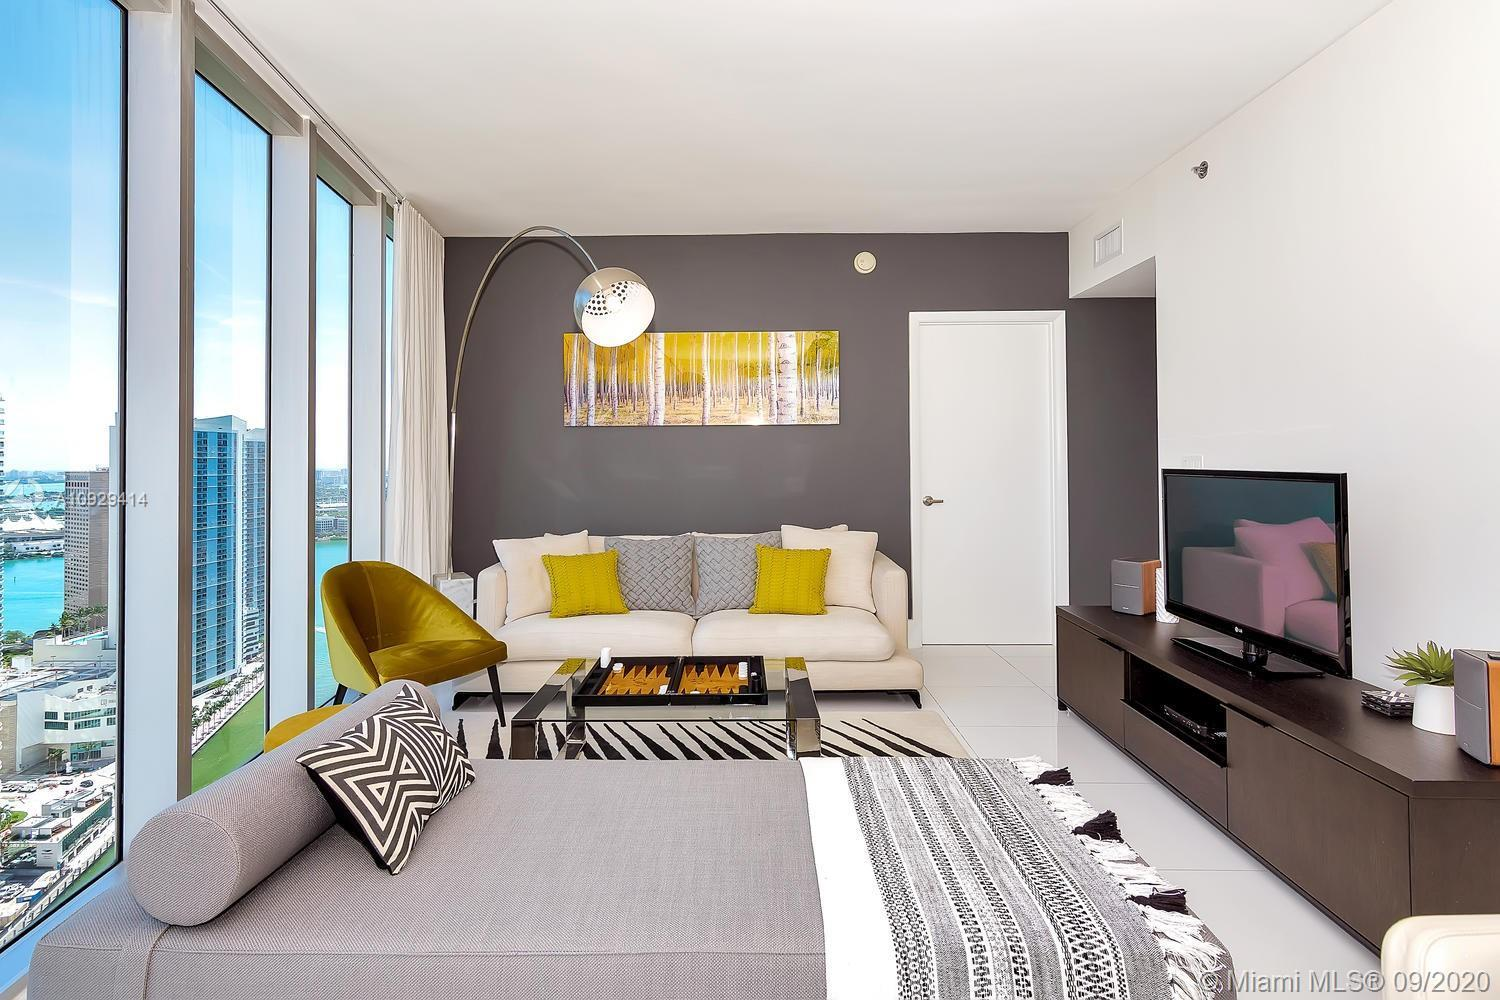 Luxury corner 2-bedroom with amazing views to the Biscayne Bay, Miami River, and Brickell Skyline. T